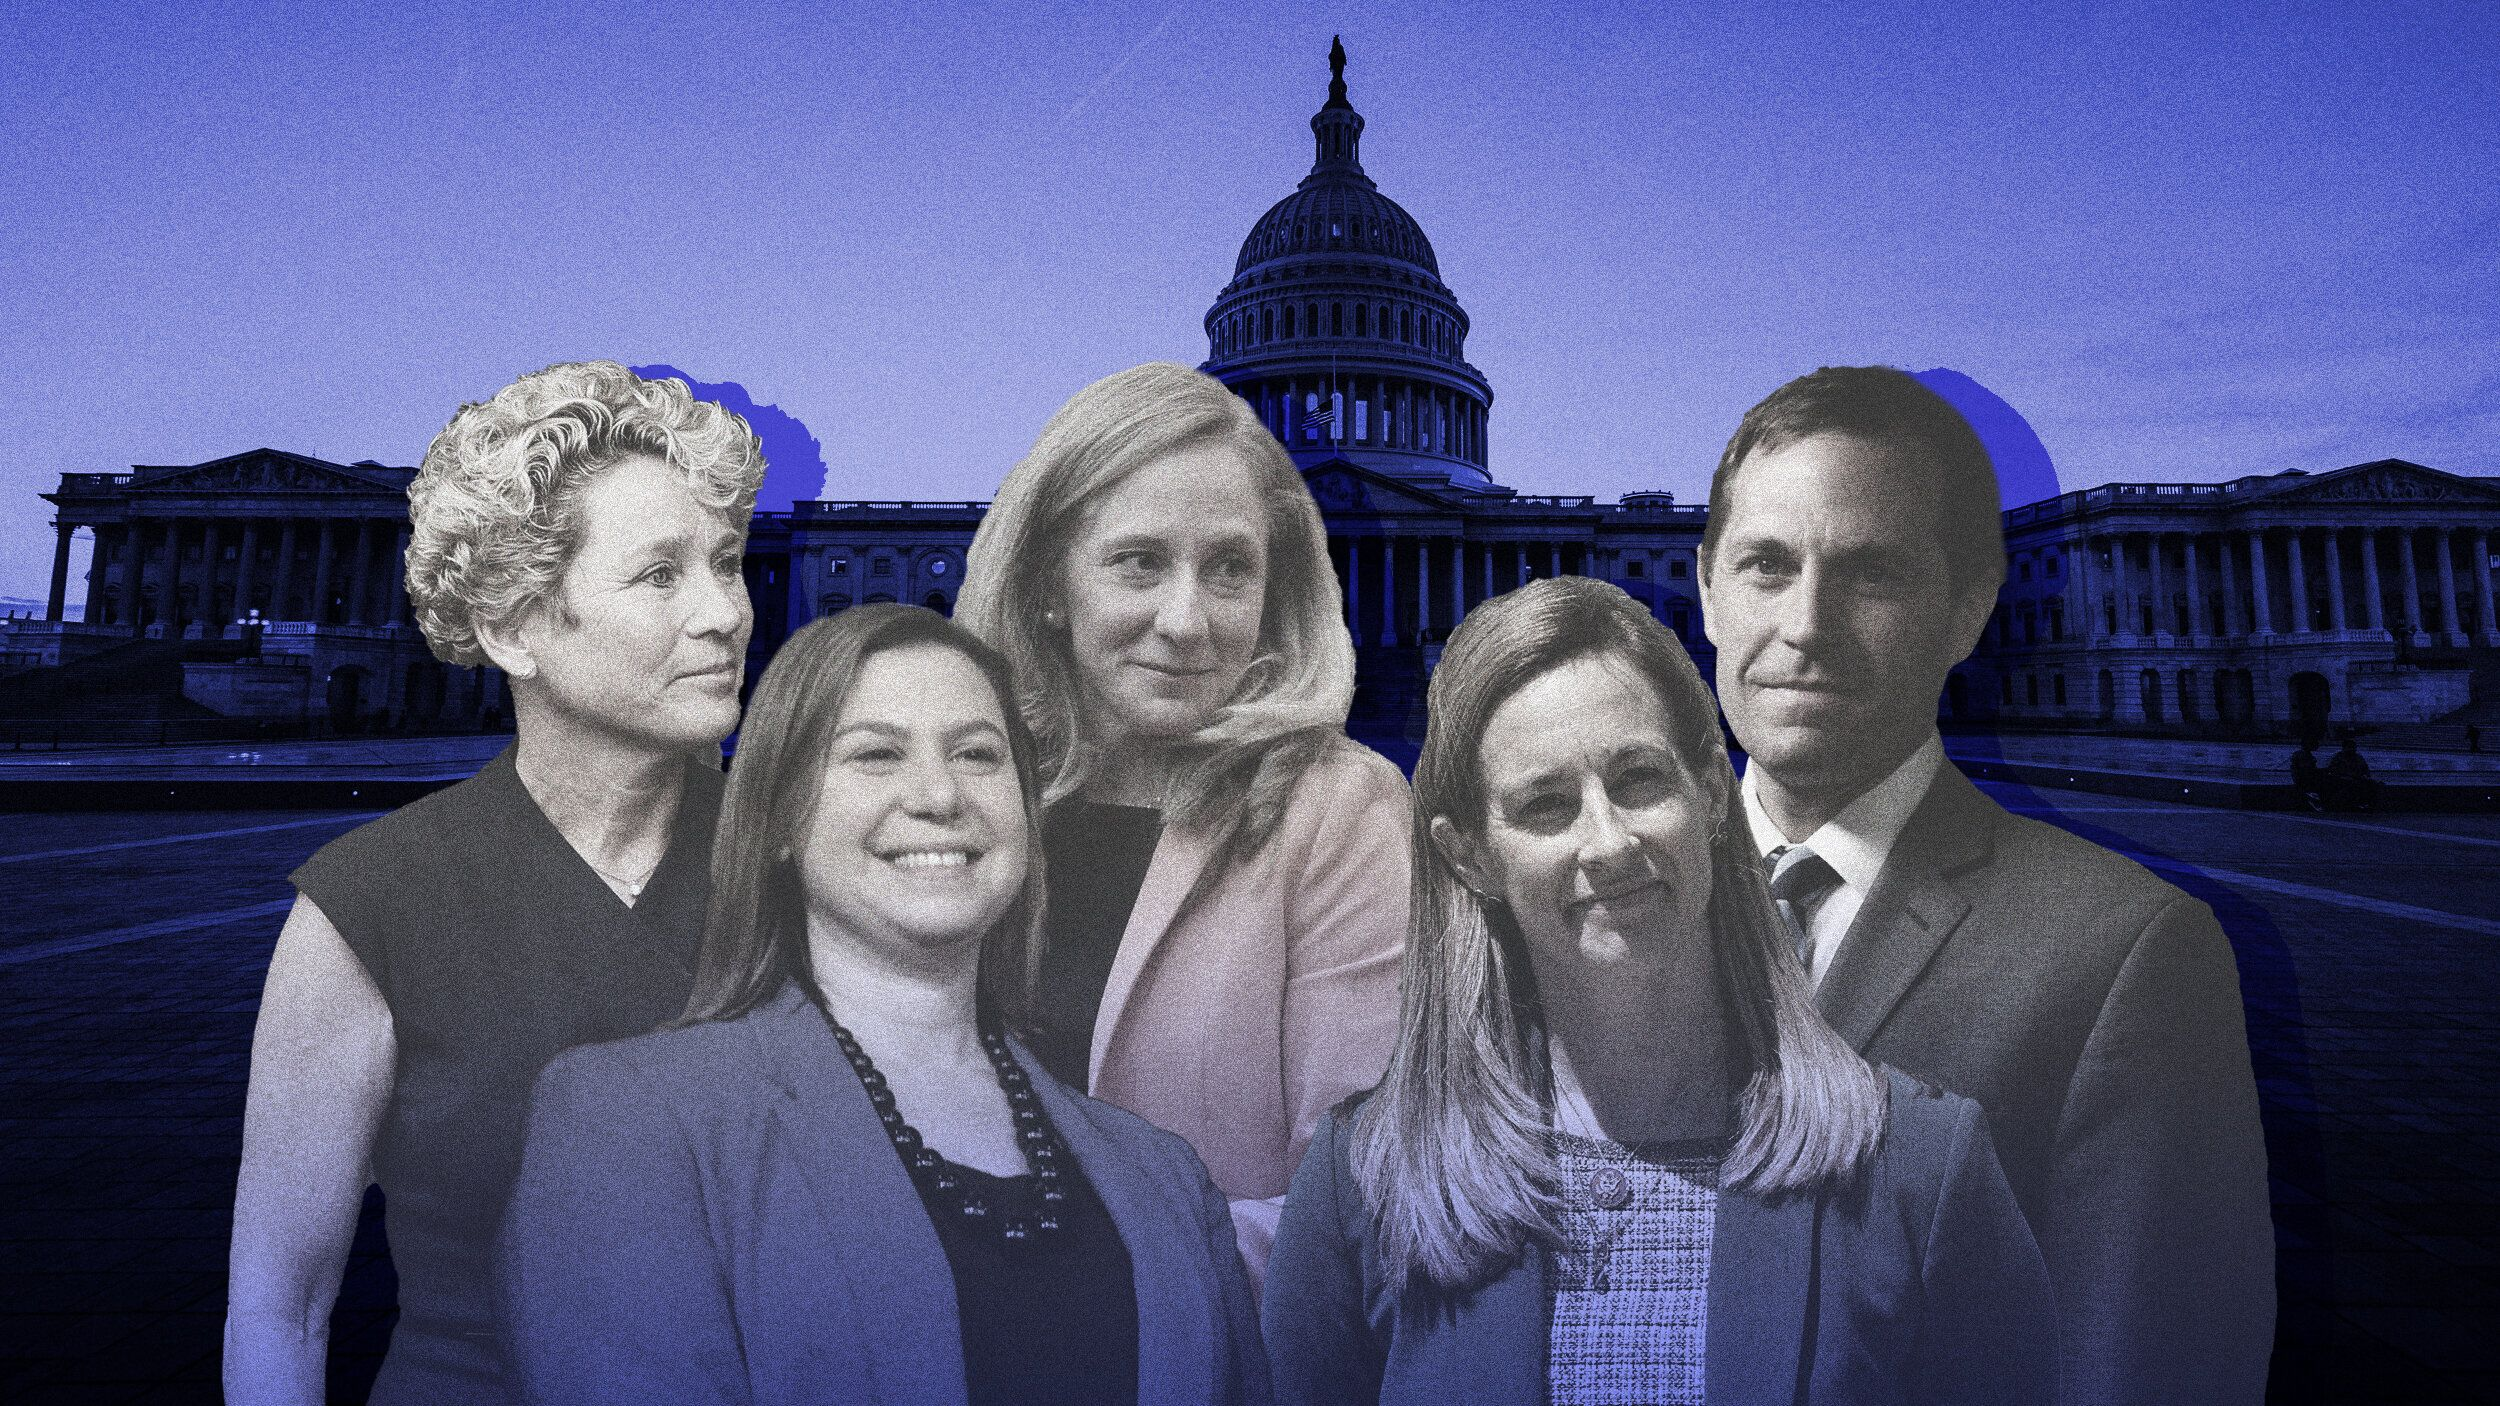 Left to right: Reps. Chrissy Houlahan (D-Pa.), Elissa Slotkin (D-Mich.), Abigail Spanberger (D-Va.), Mikie Sherrill (D-N.J.)